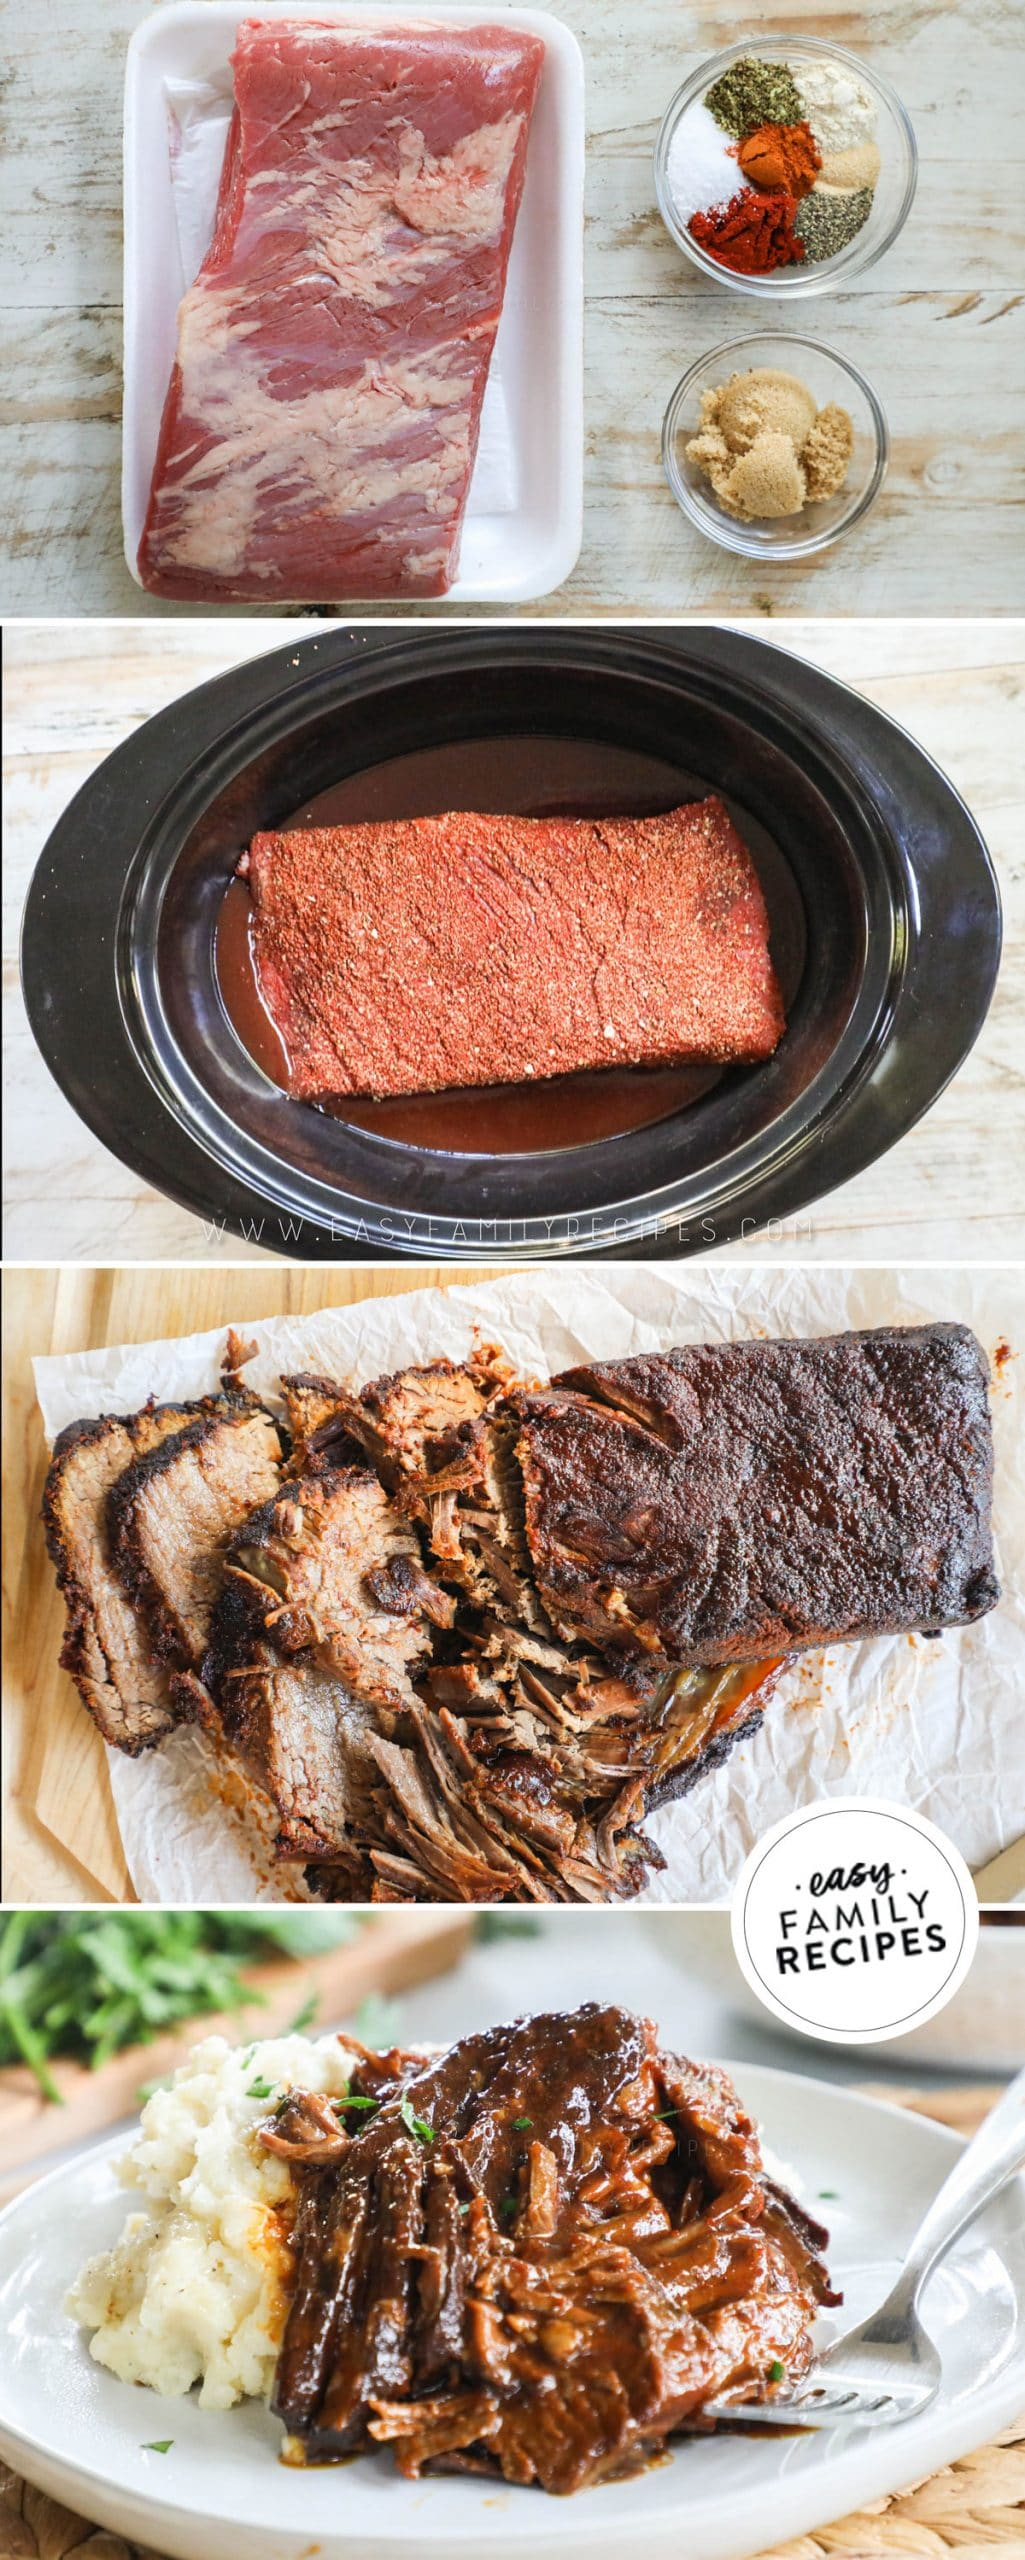 Process photos for how to make Brisket in Crock pot- 1. Prepare Brisket rub. 2. Add brisket to crockpot with BBQ sauce and broth 3. Cook and shred meat. 4. Combine meat with BBQ sauce and serve.